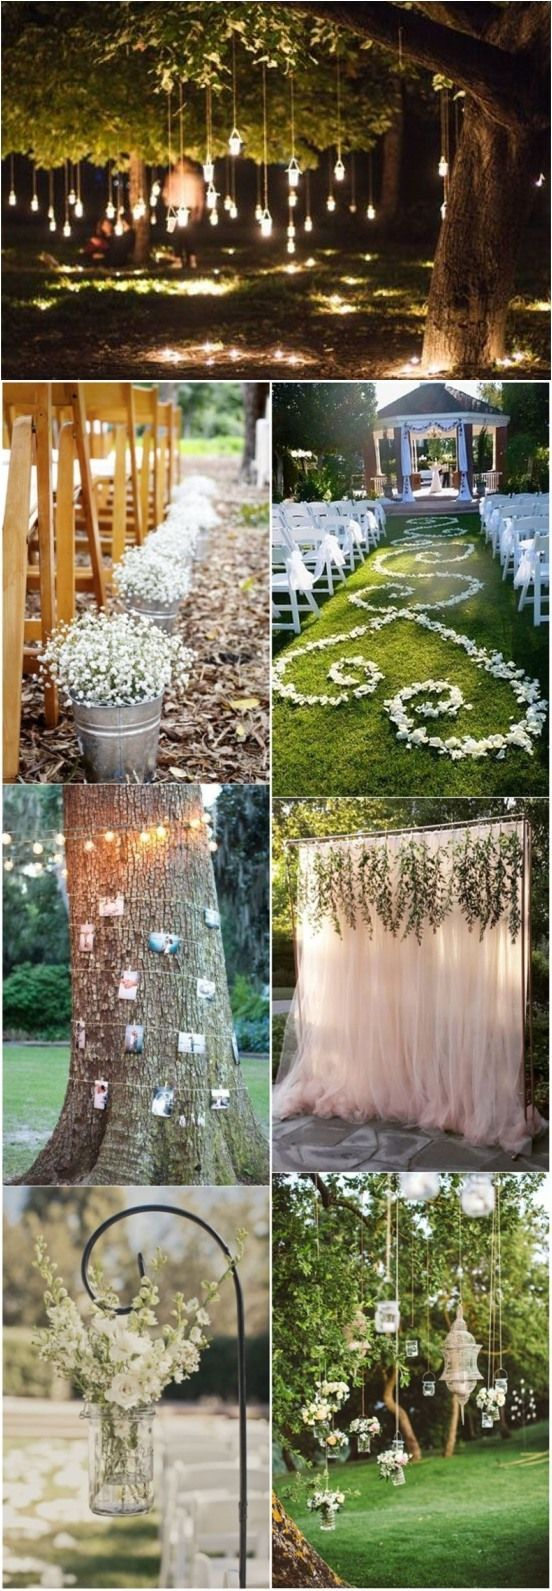 20 genius outdoor wedding ideas outdoor wedding decorations